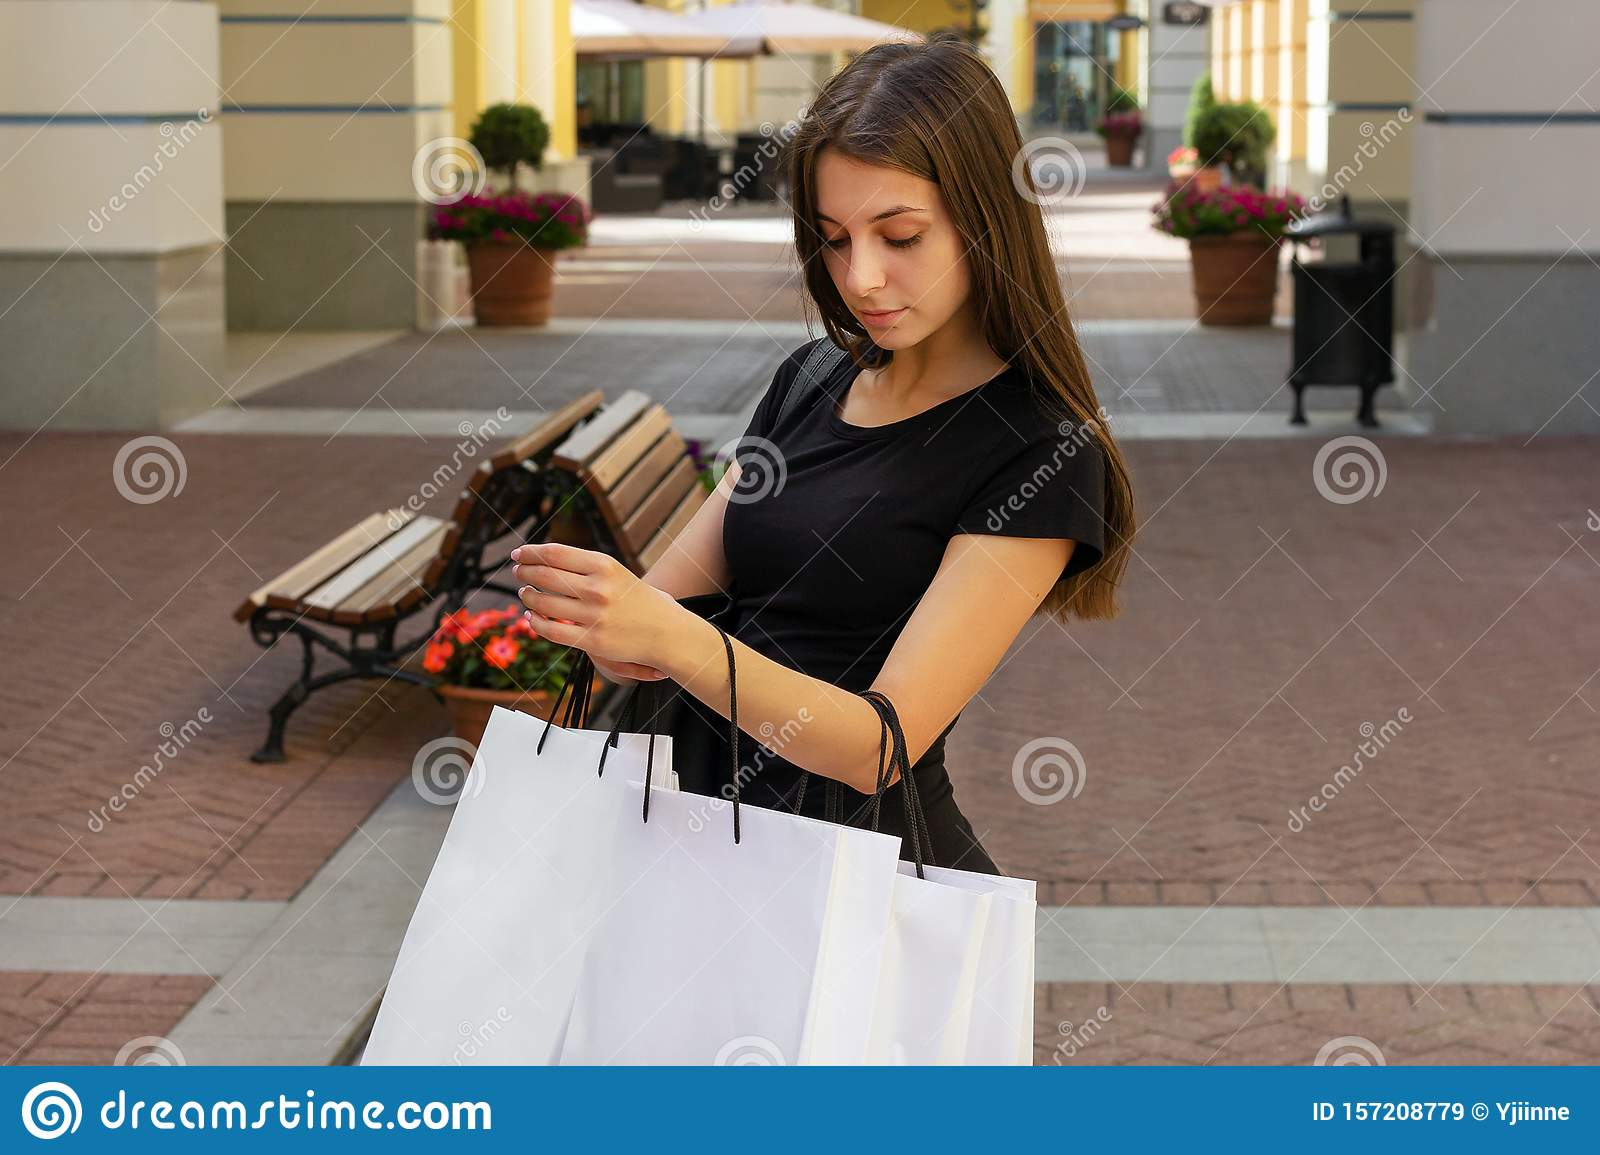 Shopping girl looking in bag sale lifestyles happiness